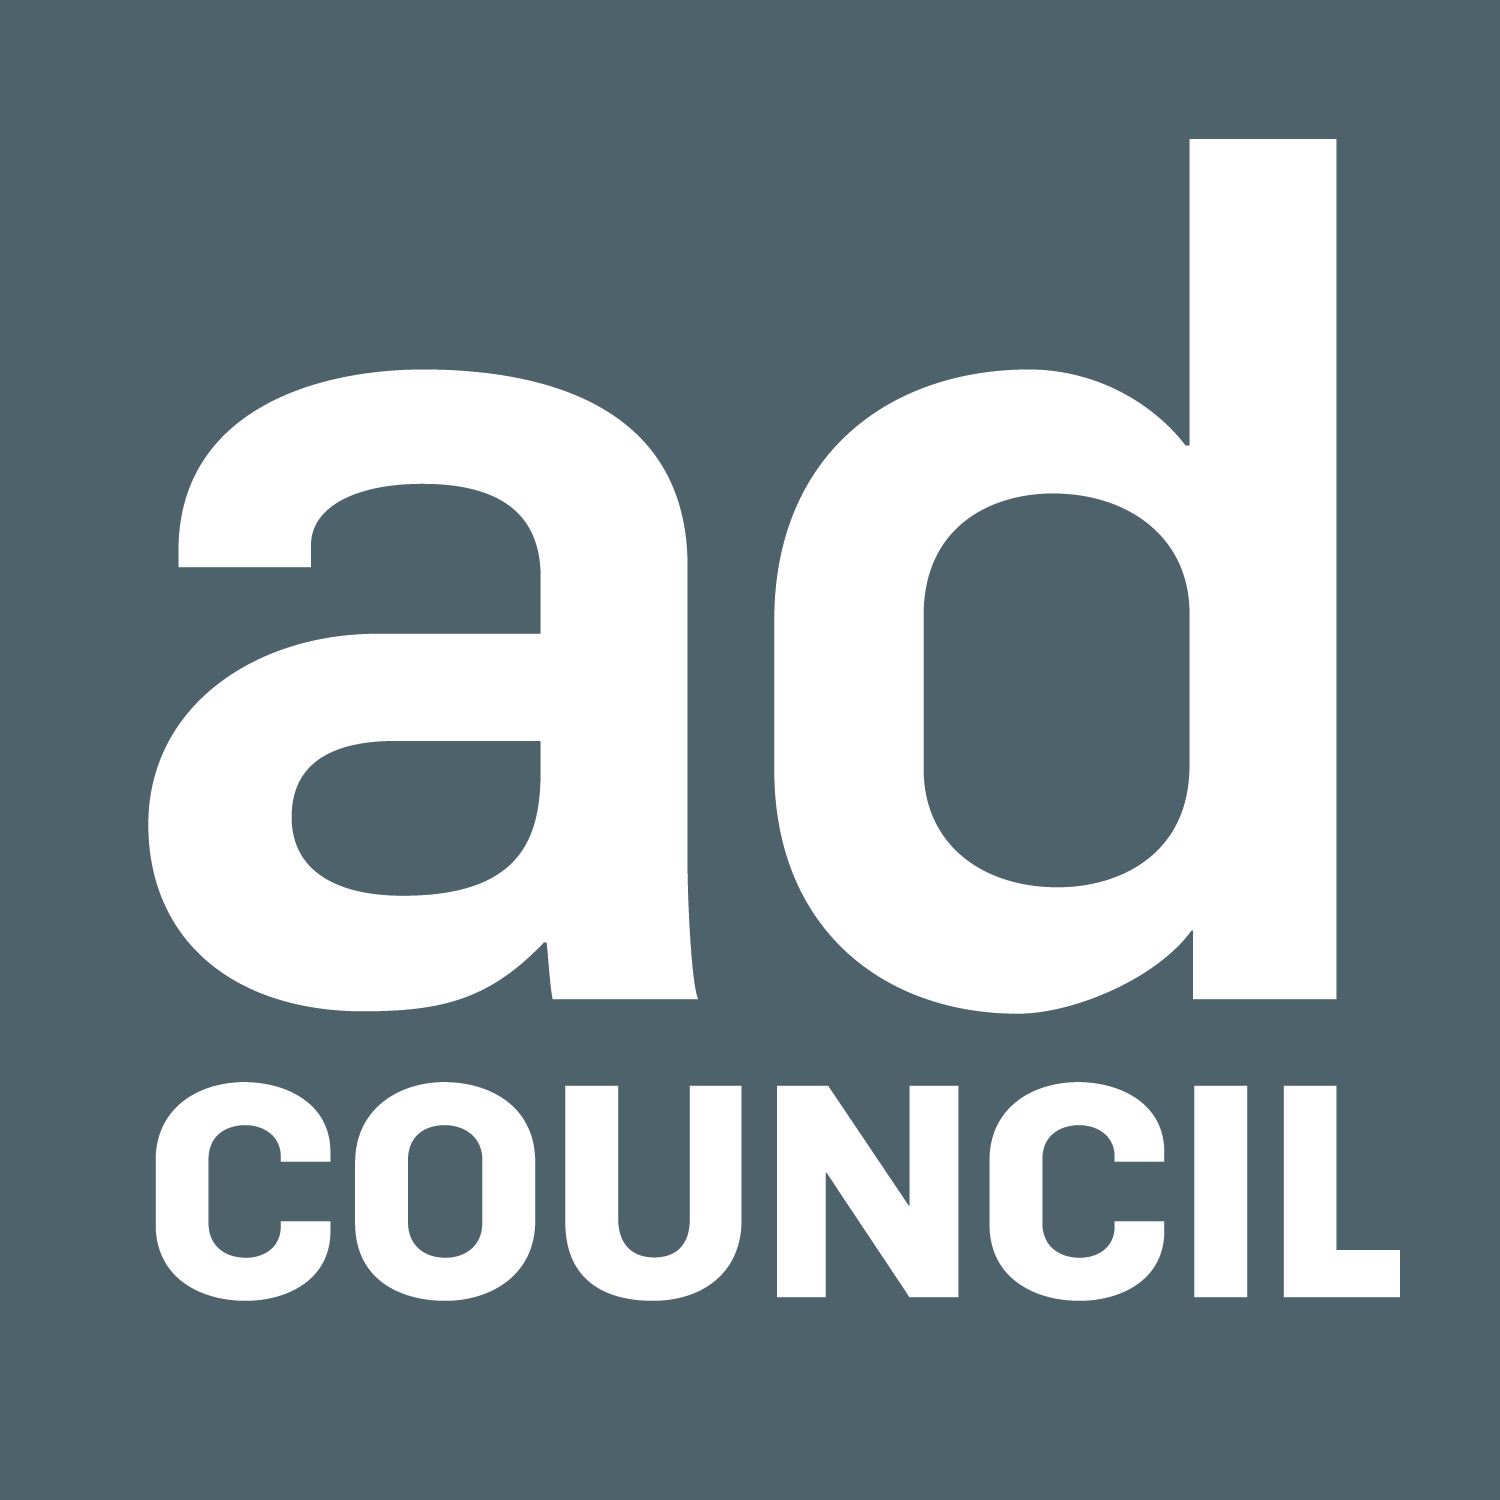 Ad-Council-Announces-Most-Extensive-Rebrand-in-its-75-Year-History.jpg